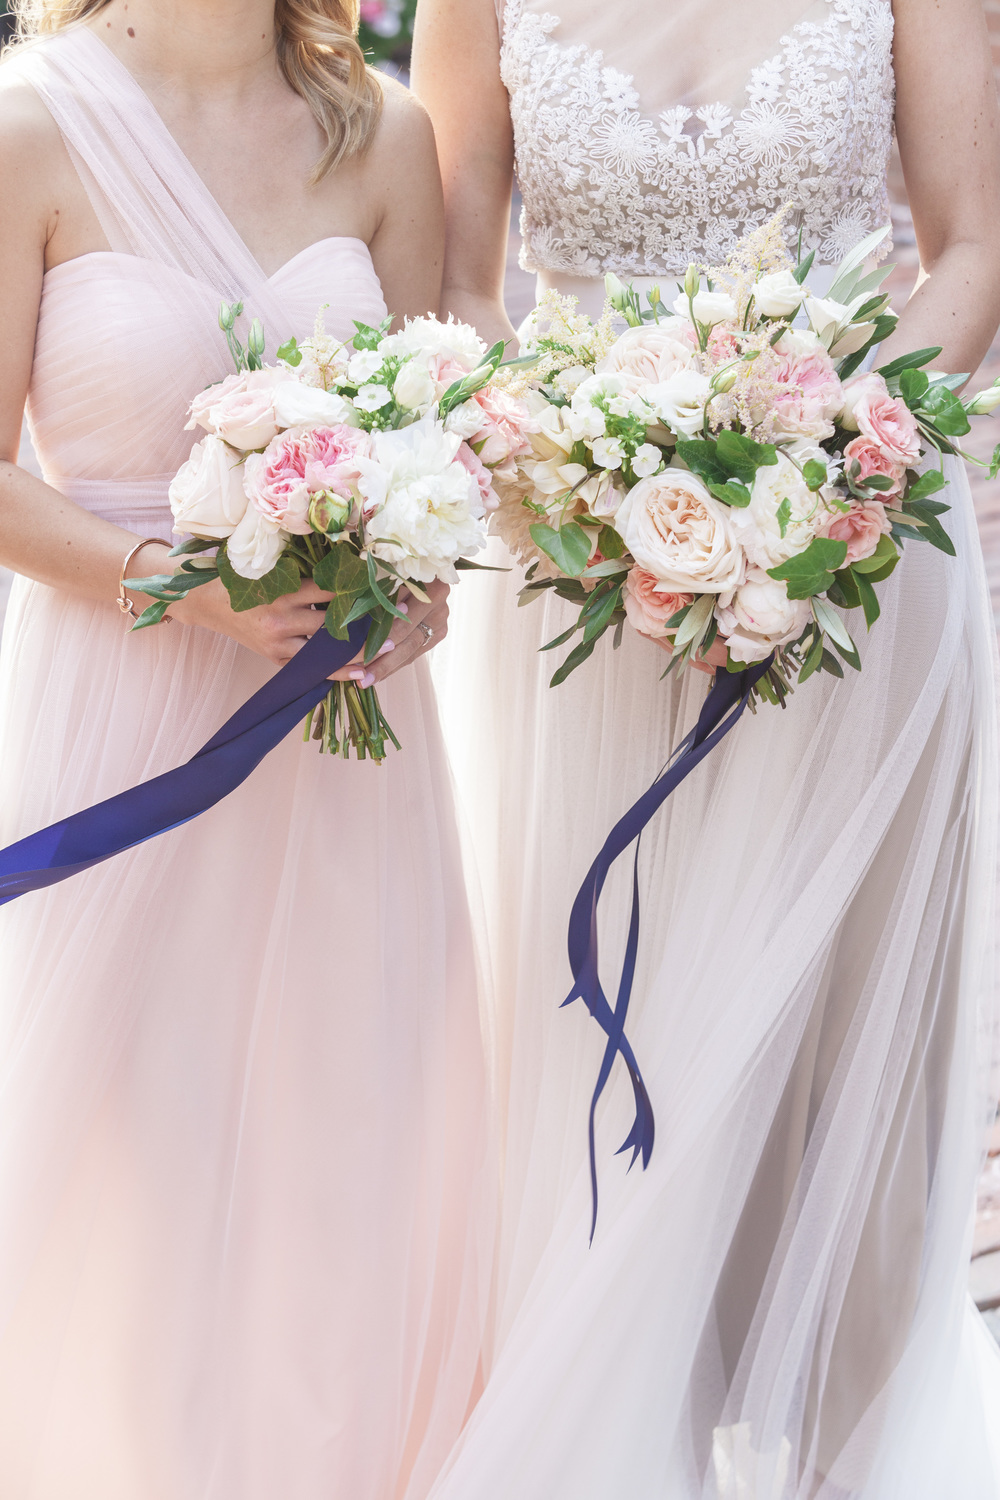 The maid of honour and bride's bouquets.